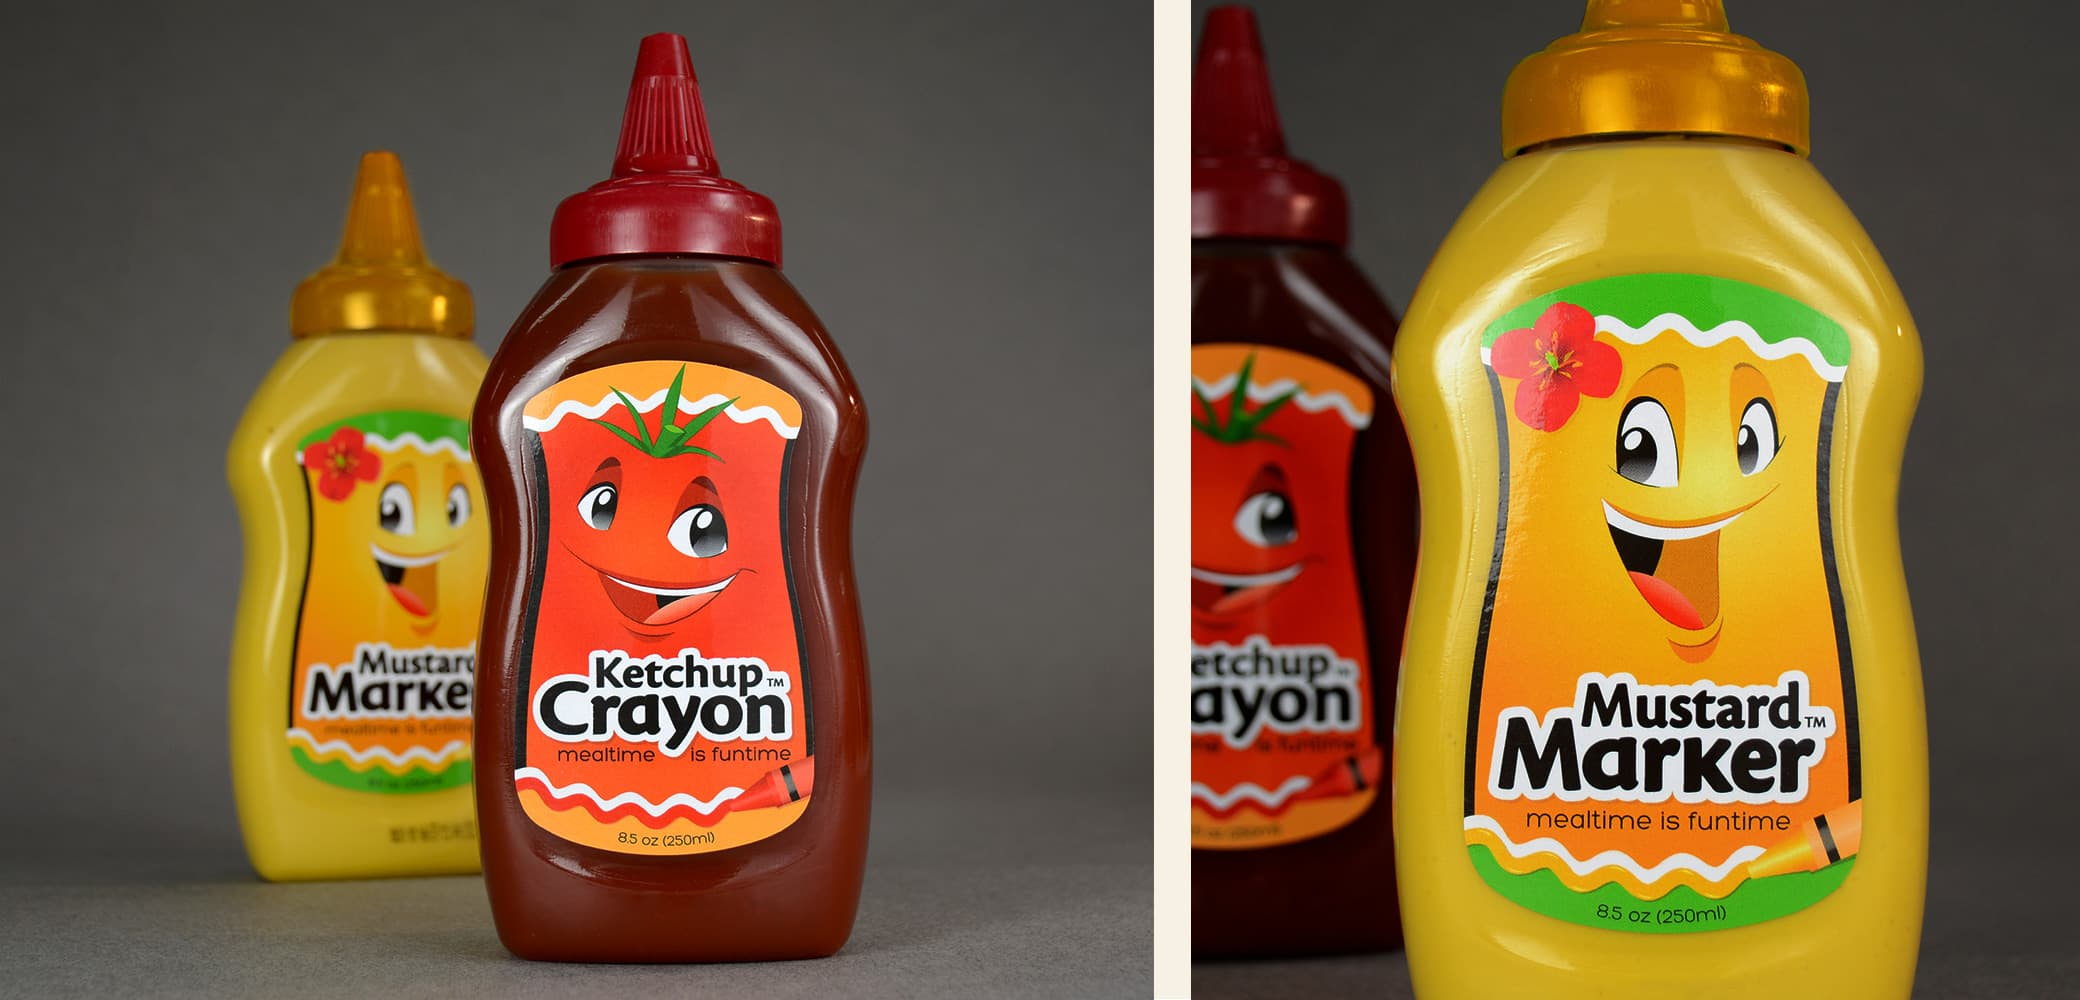 Ketchup Crayon and Mustard Marker label design by Red Chalk Studios